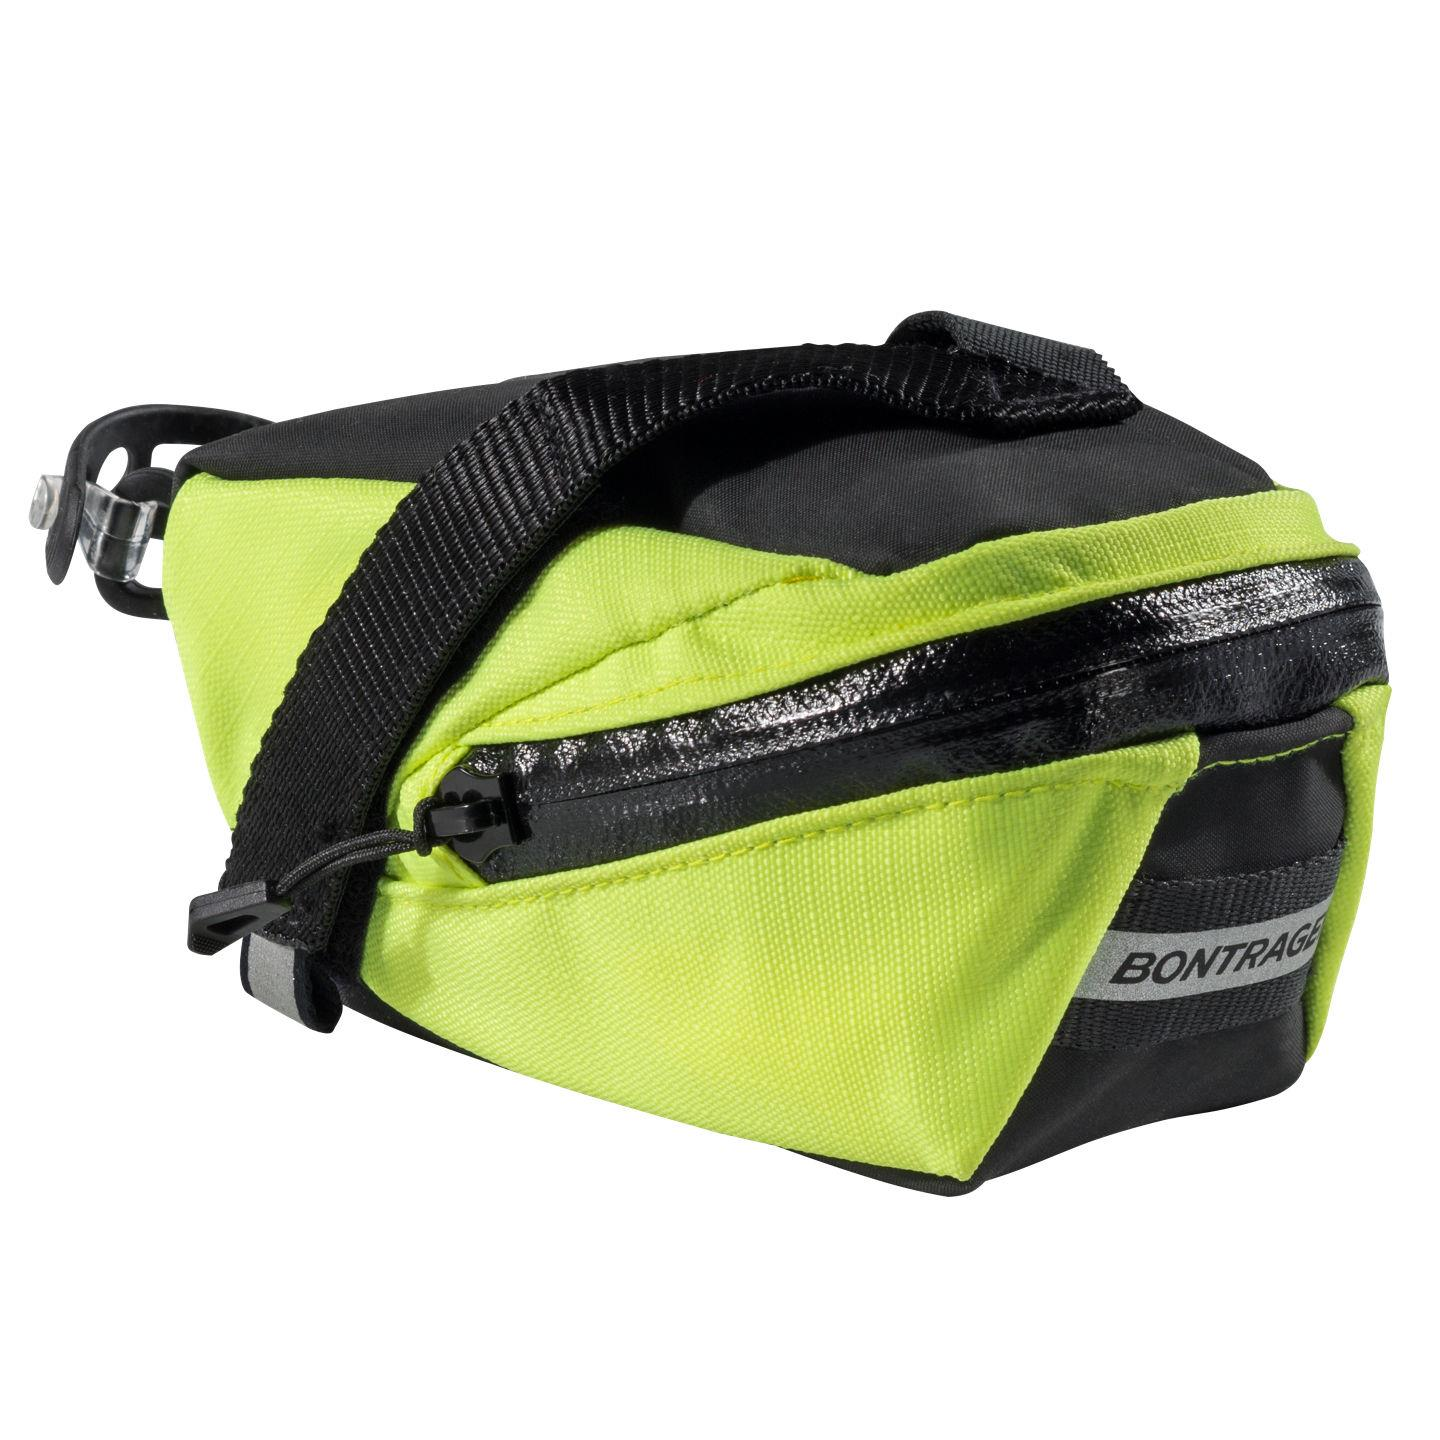 Bontrager Seat Pack Elite Small Visibility